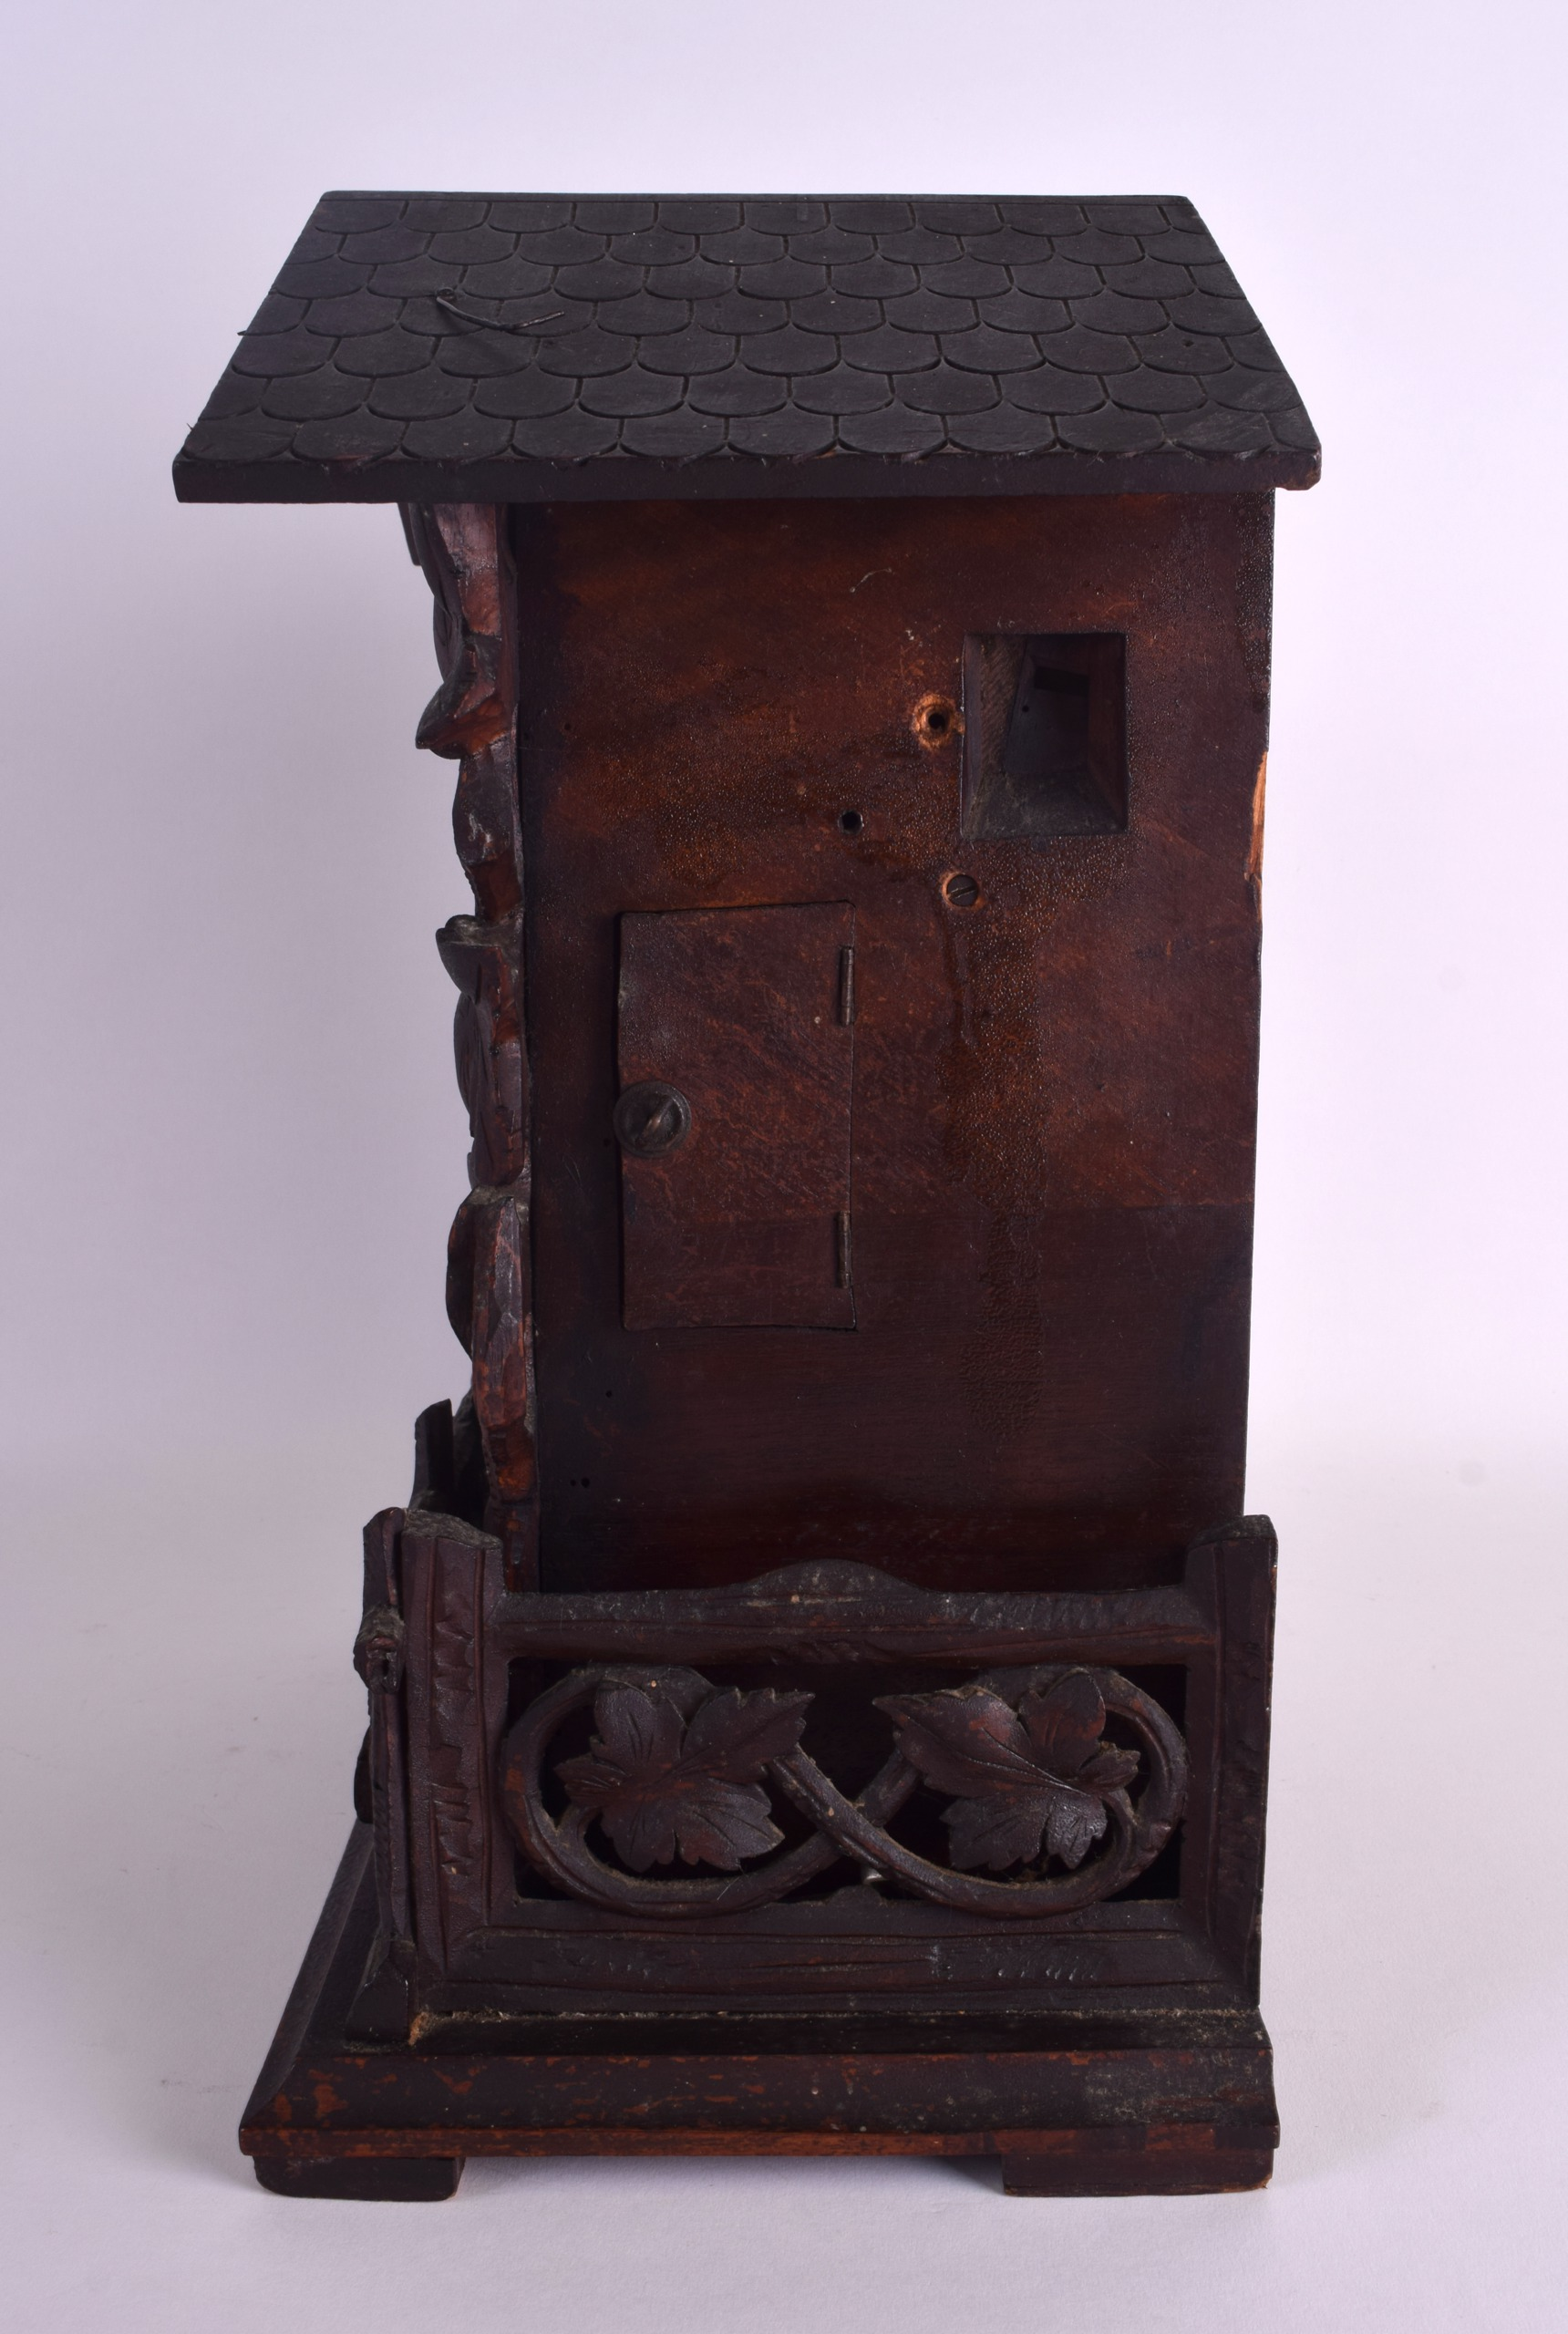 Lot 1000 - AN EARLY 20TH CENTURY GERMAN BAVARIAN BLACK FOREST CUCKOO CLOCK overlaid with vines and leaves. 39